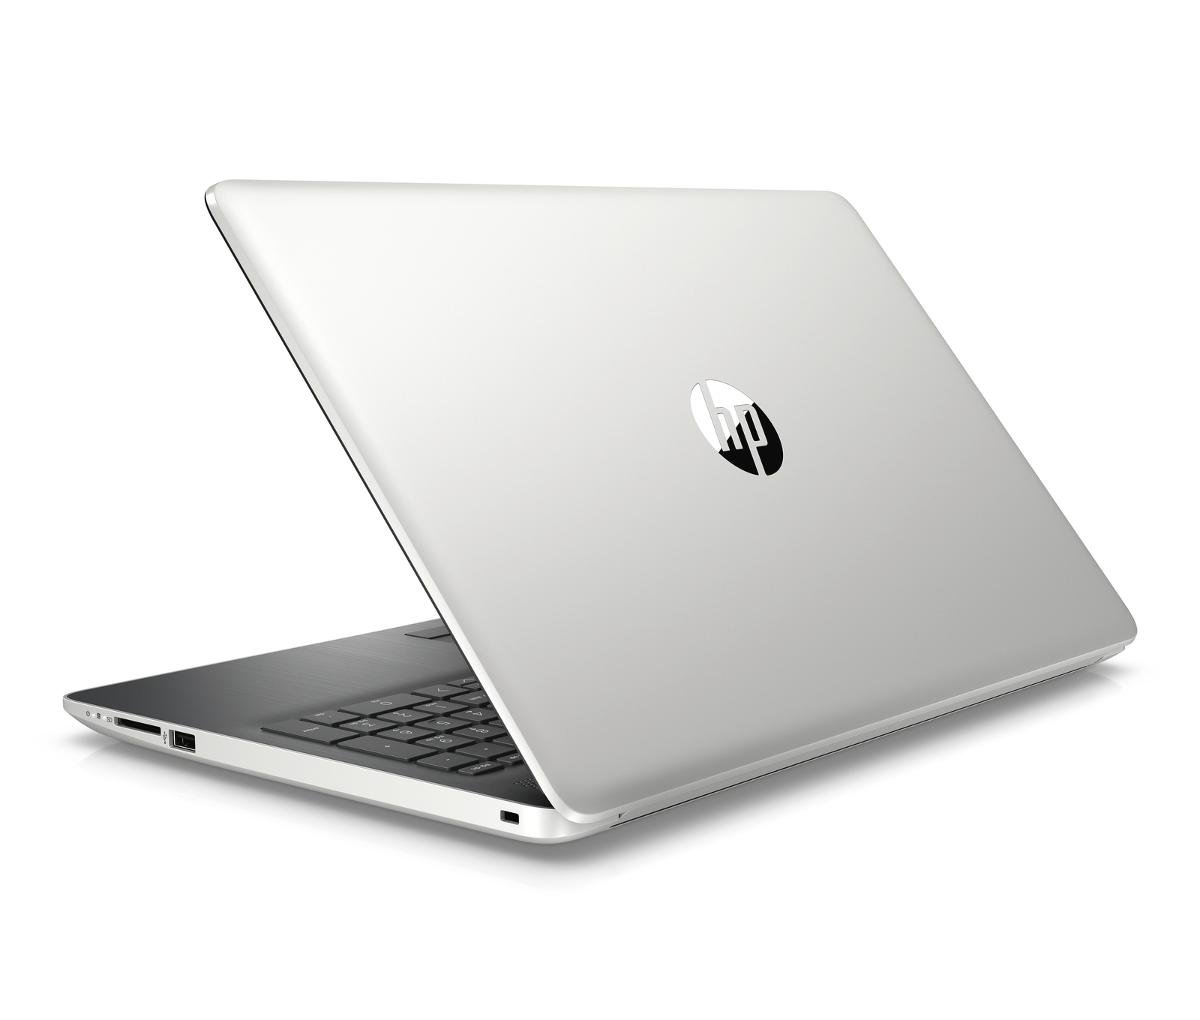 "Laptop HP 15-da0015nw 4UE87EA, i3-7020U, MX110, 4 GB RAM, 15.6"", 256 GB, Windows 10 Home"